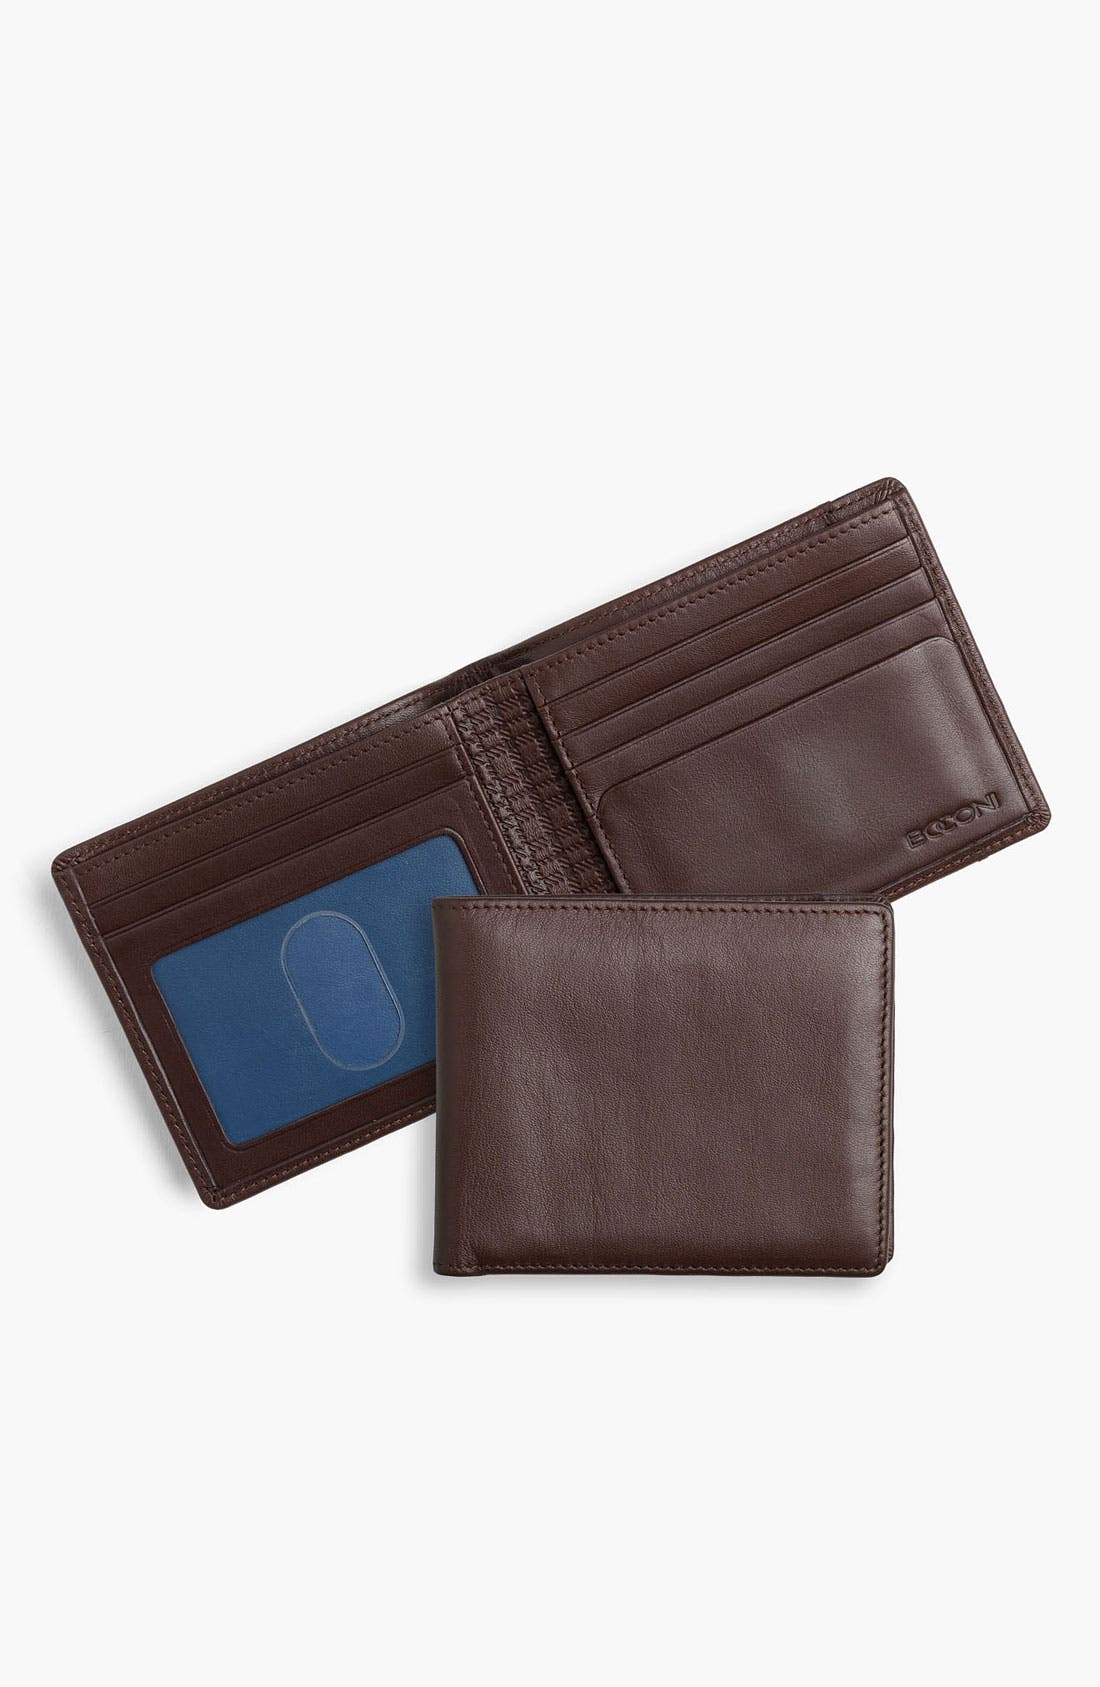 Alternate Image 1 Selected - Boconi Calfskin Wallet